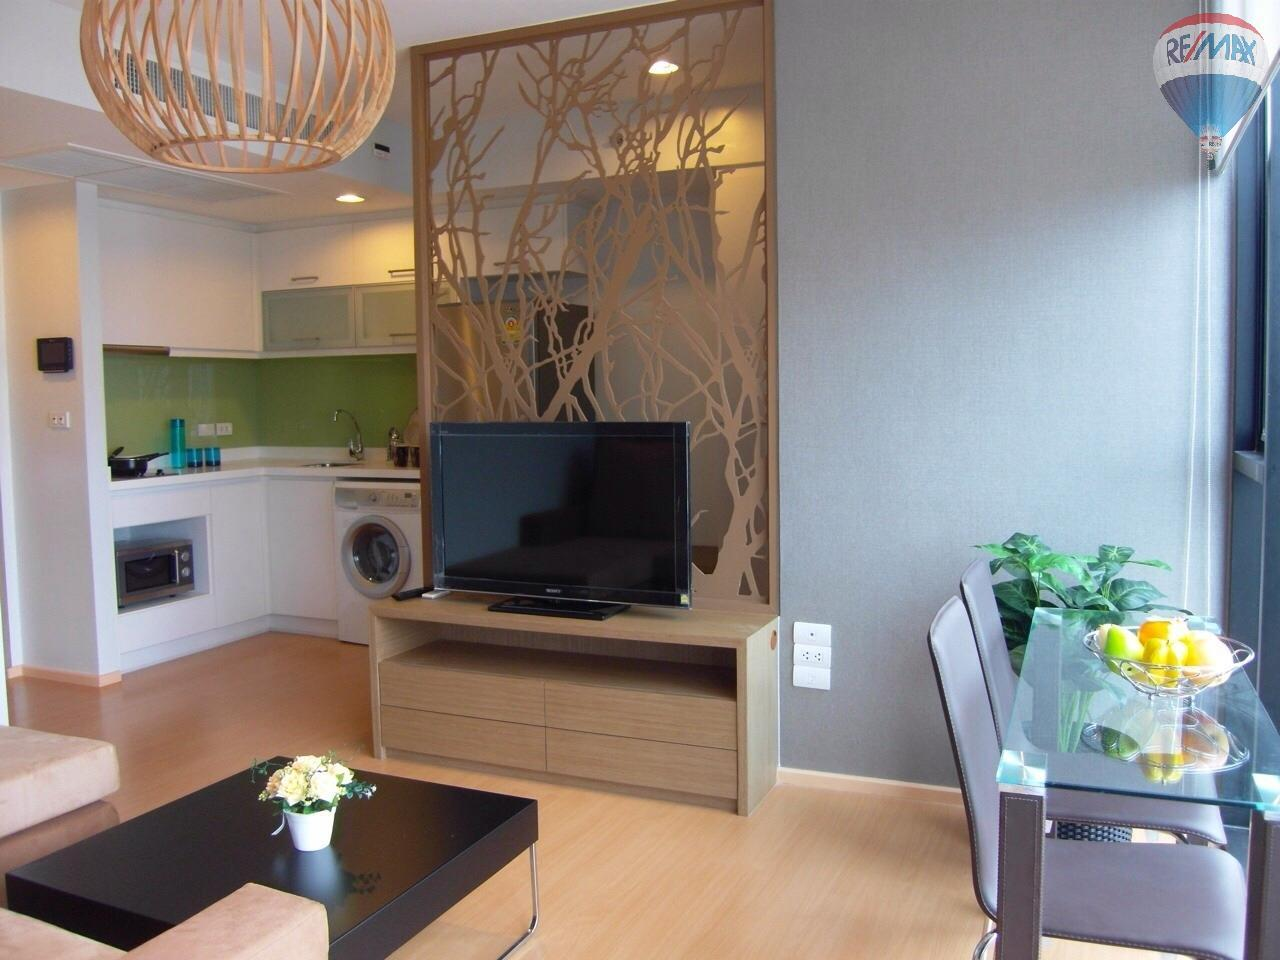 RE/MAX Properties Agency's Condominium for rent 1 bedrooms 40 Sq.m. at Alcove Condominium 5